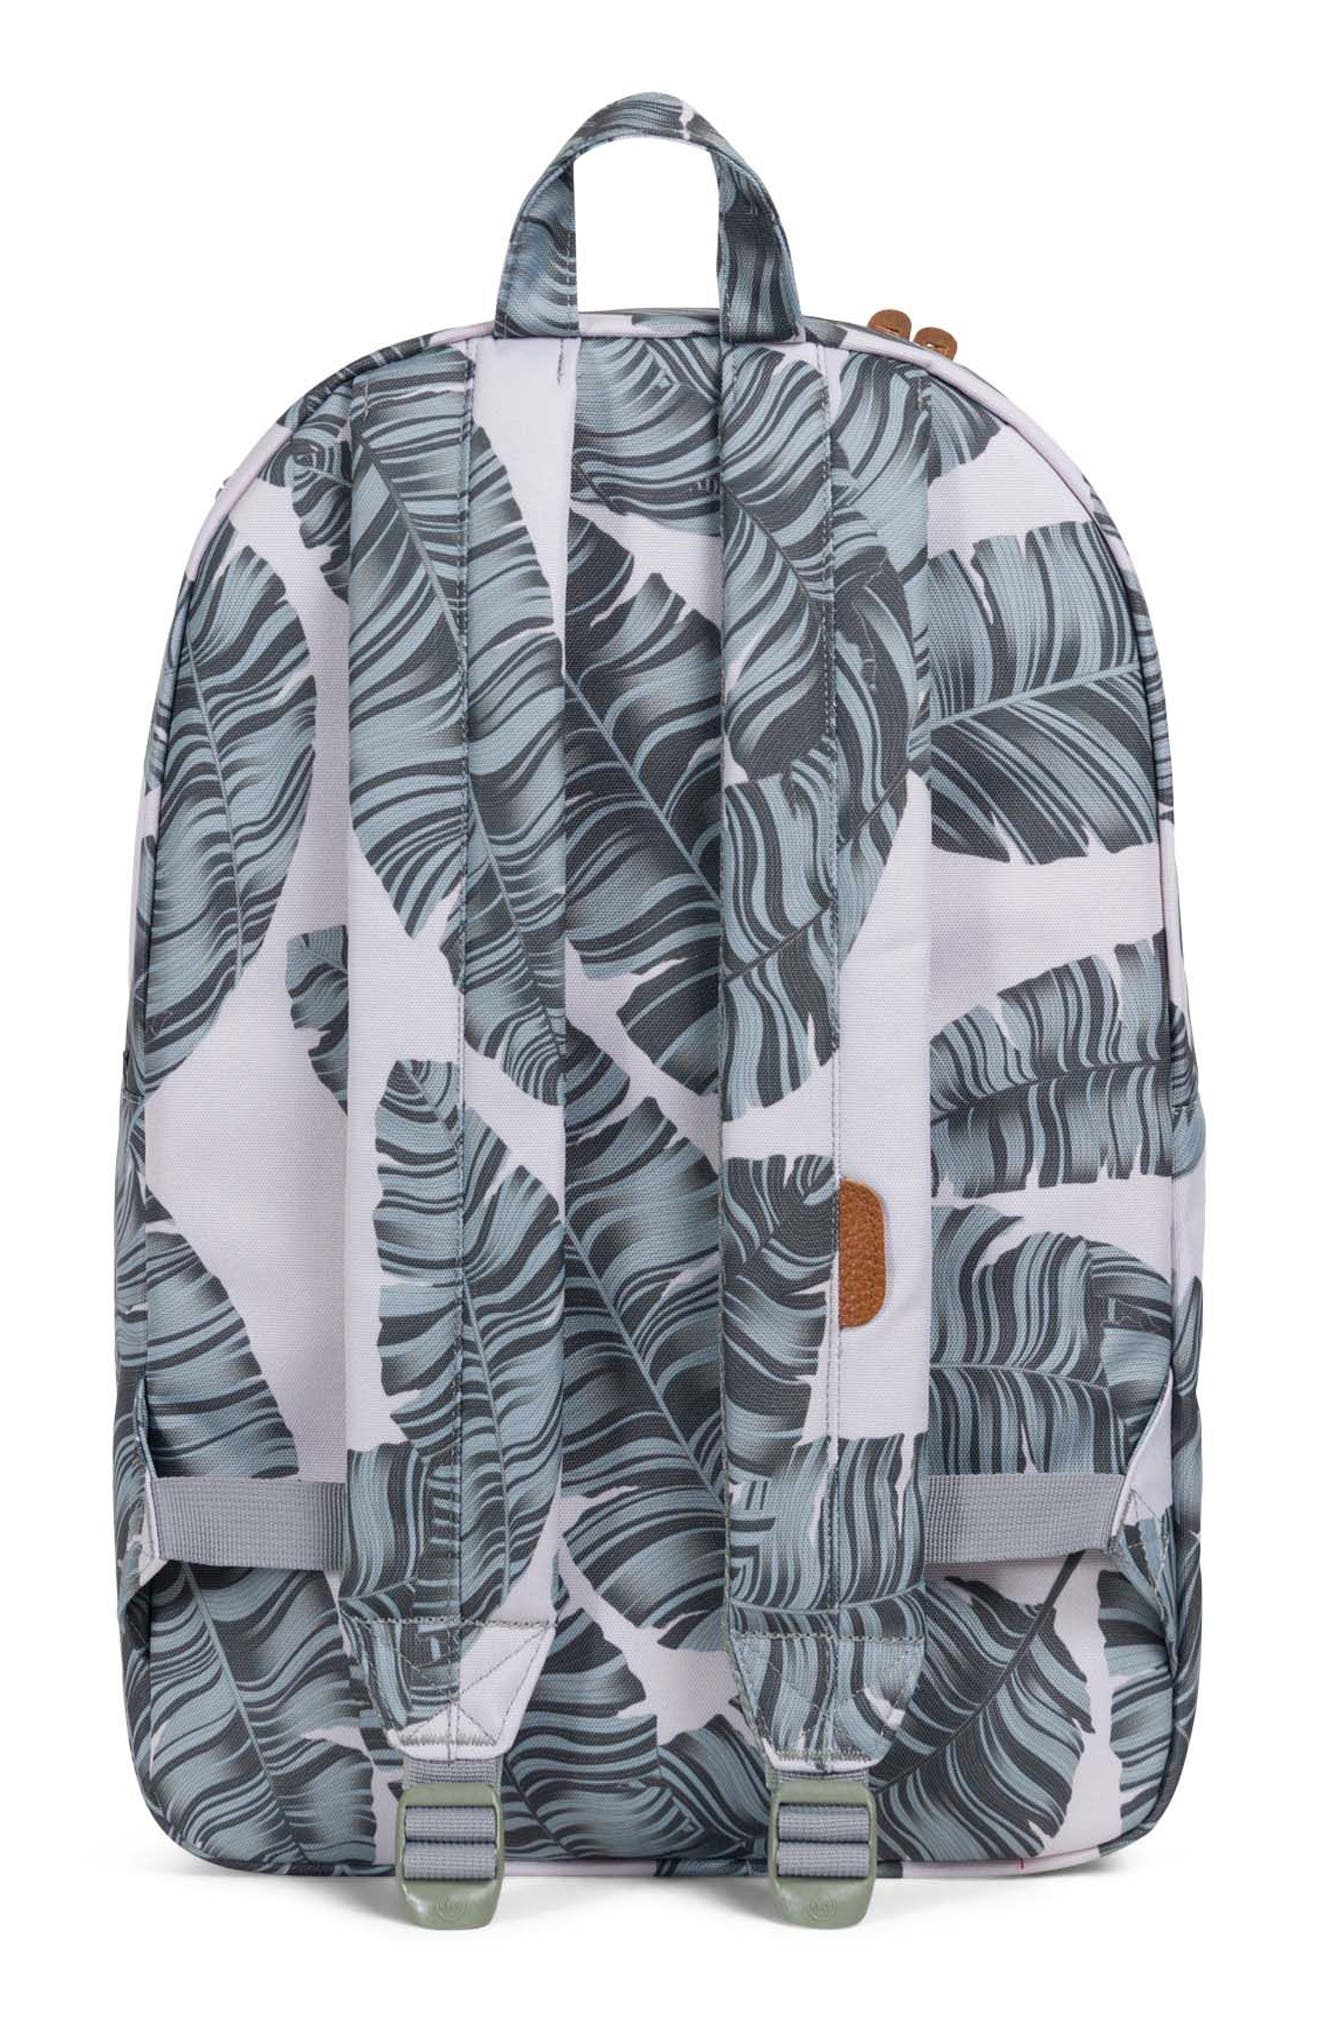 Heritage Backpack,                             Alternate thumbnail 2, color,                             Silver Birch Palm/ Tan